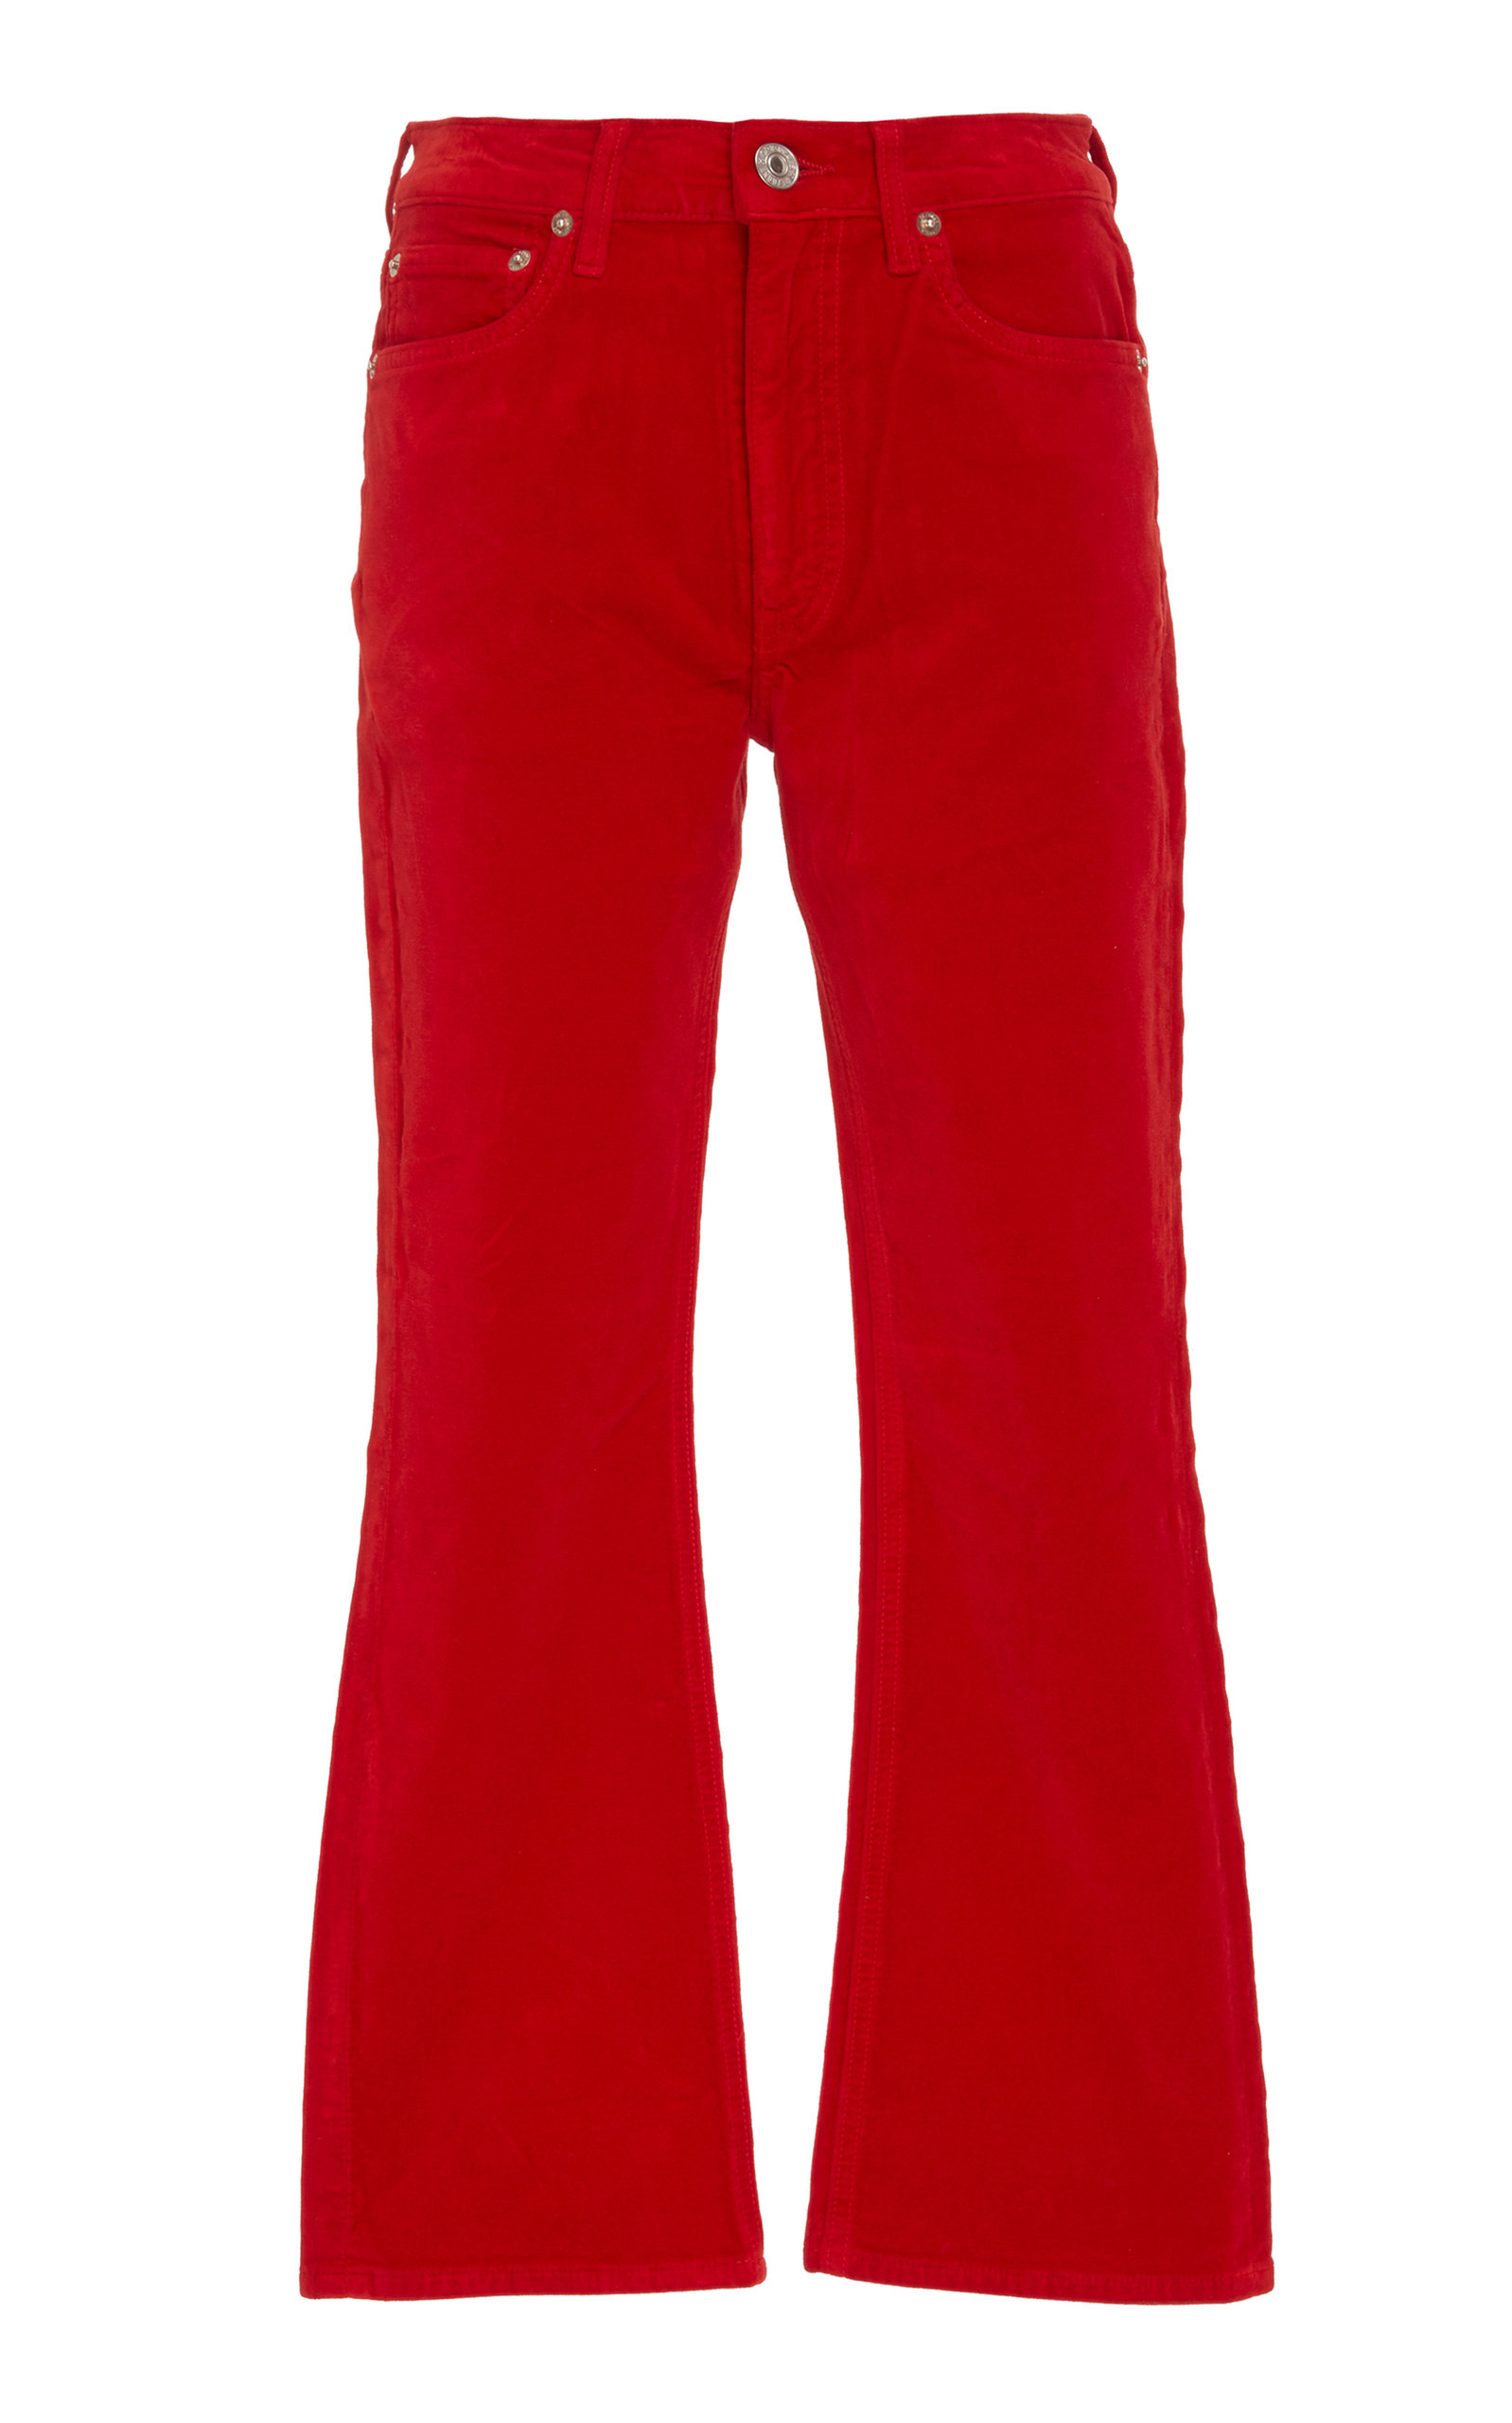 Mid-Rise Cropped Velvet Pant in Red